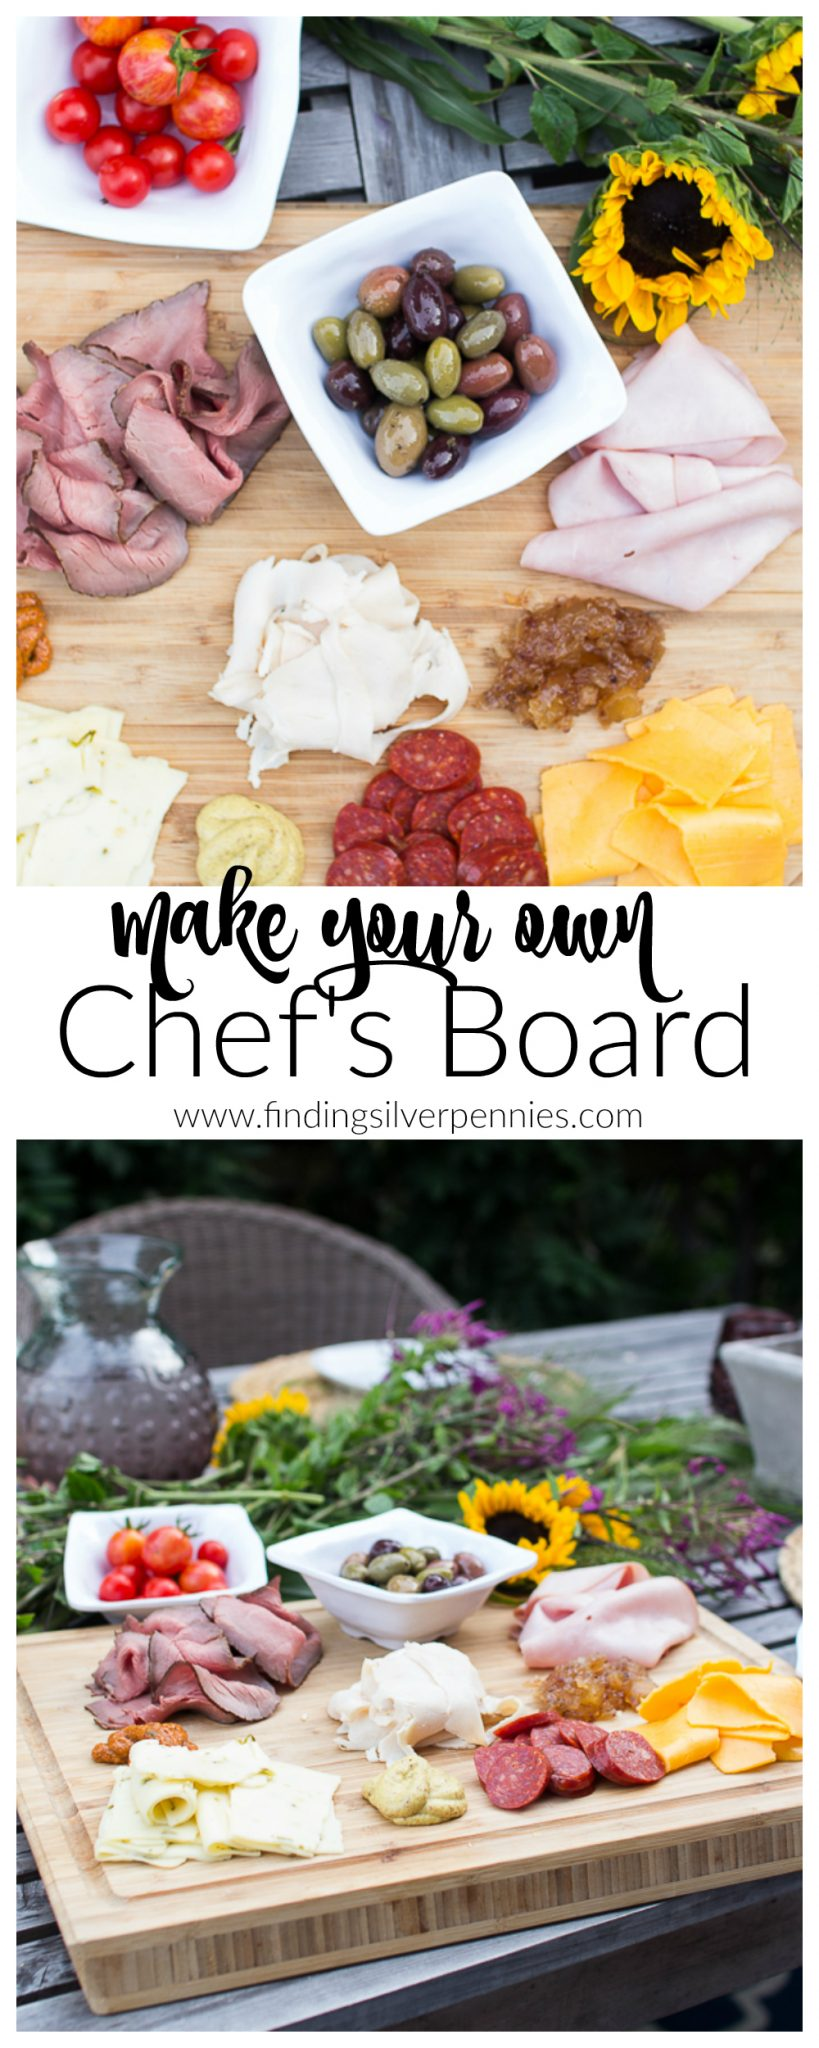 Make Your Own Chef's Board